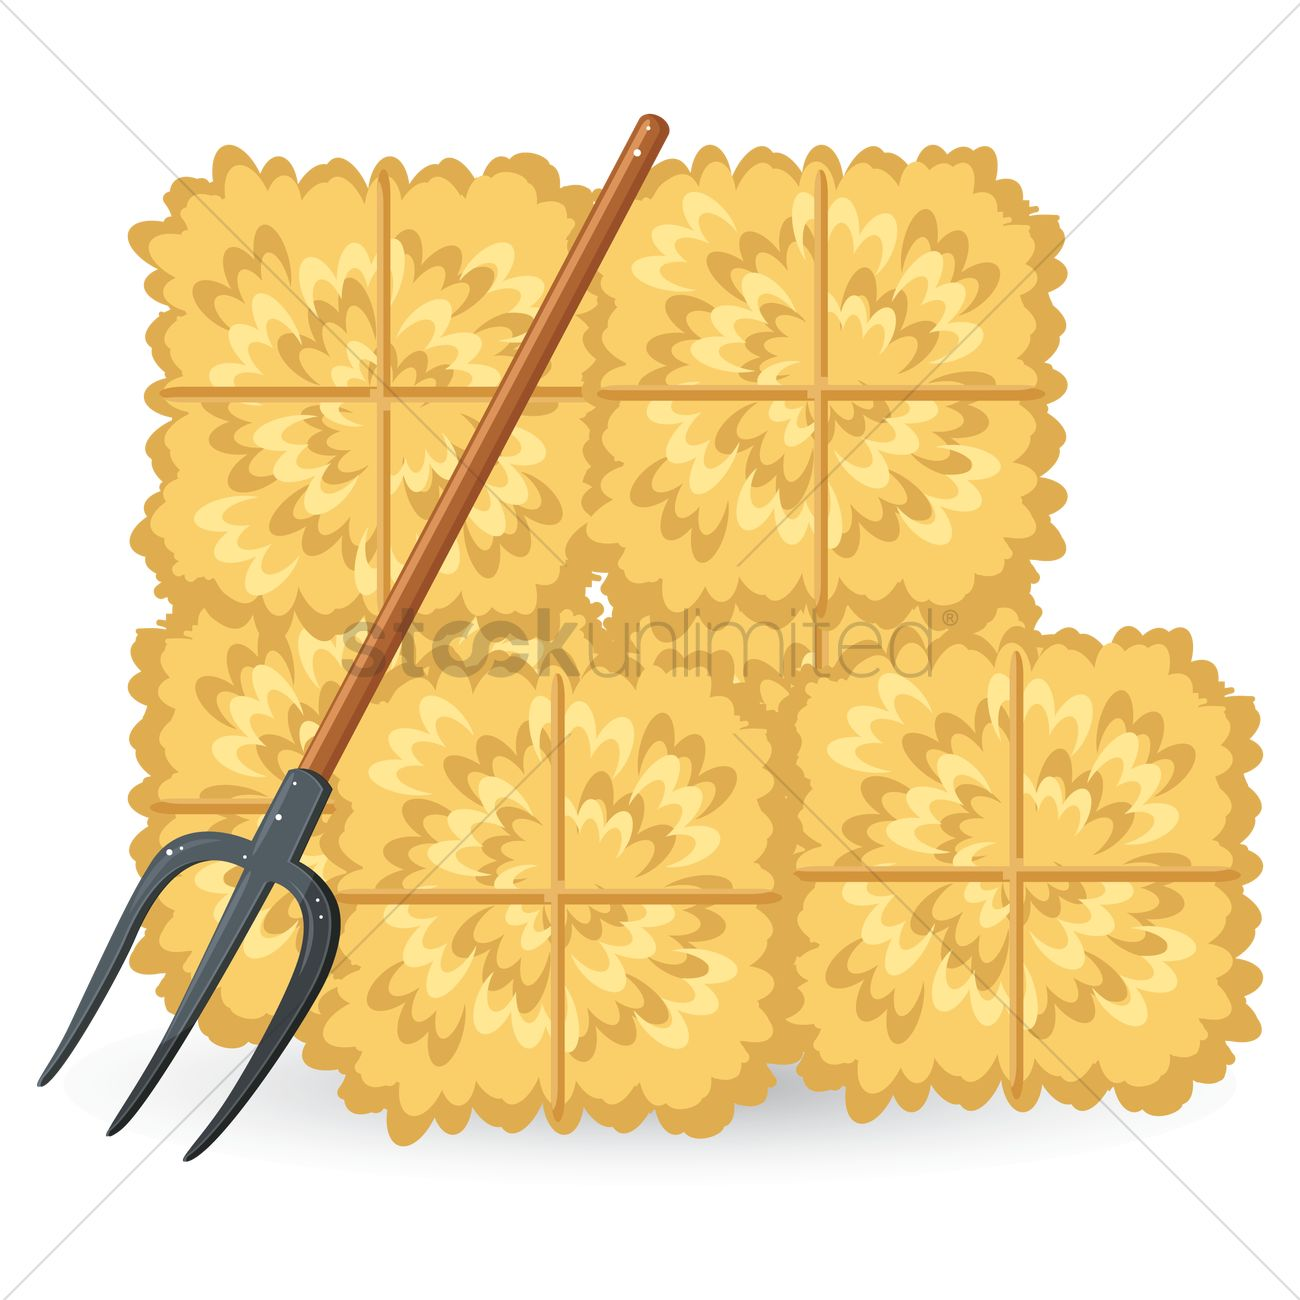 Hay Bale Clip Art : Straw bales with pitchfork vector image